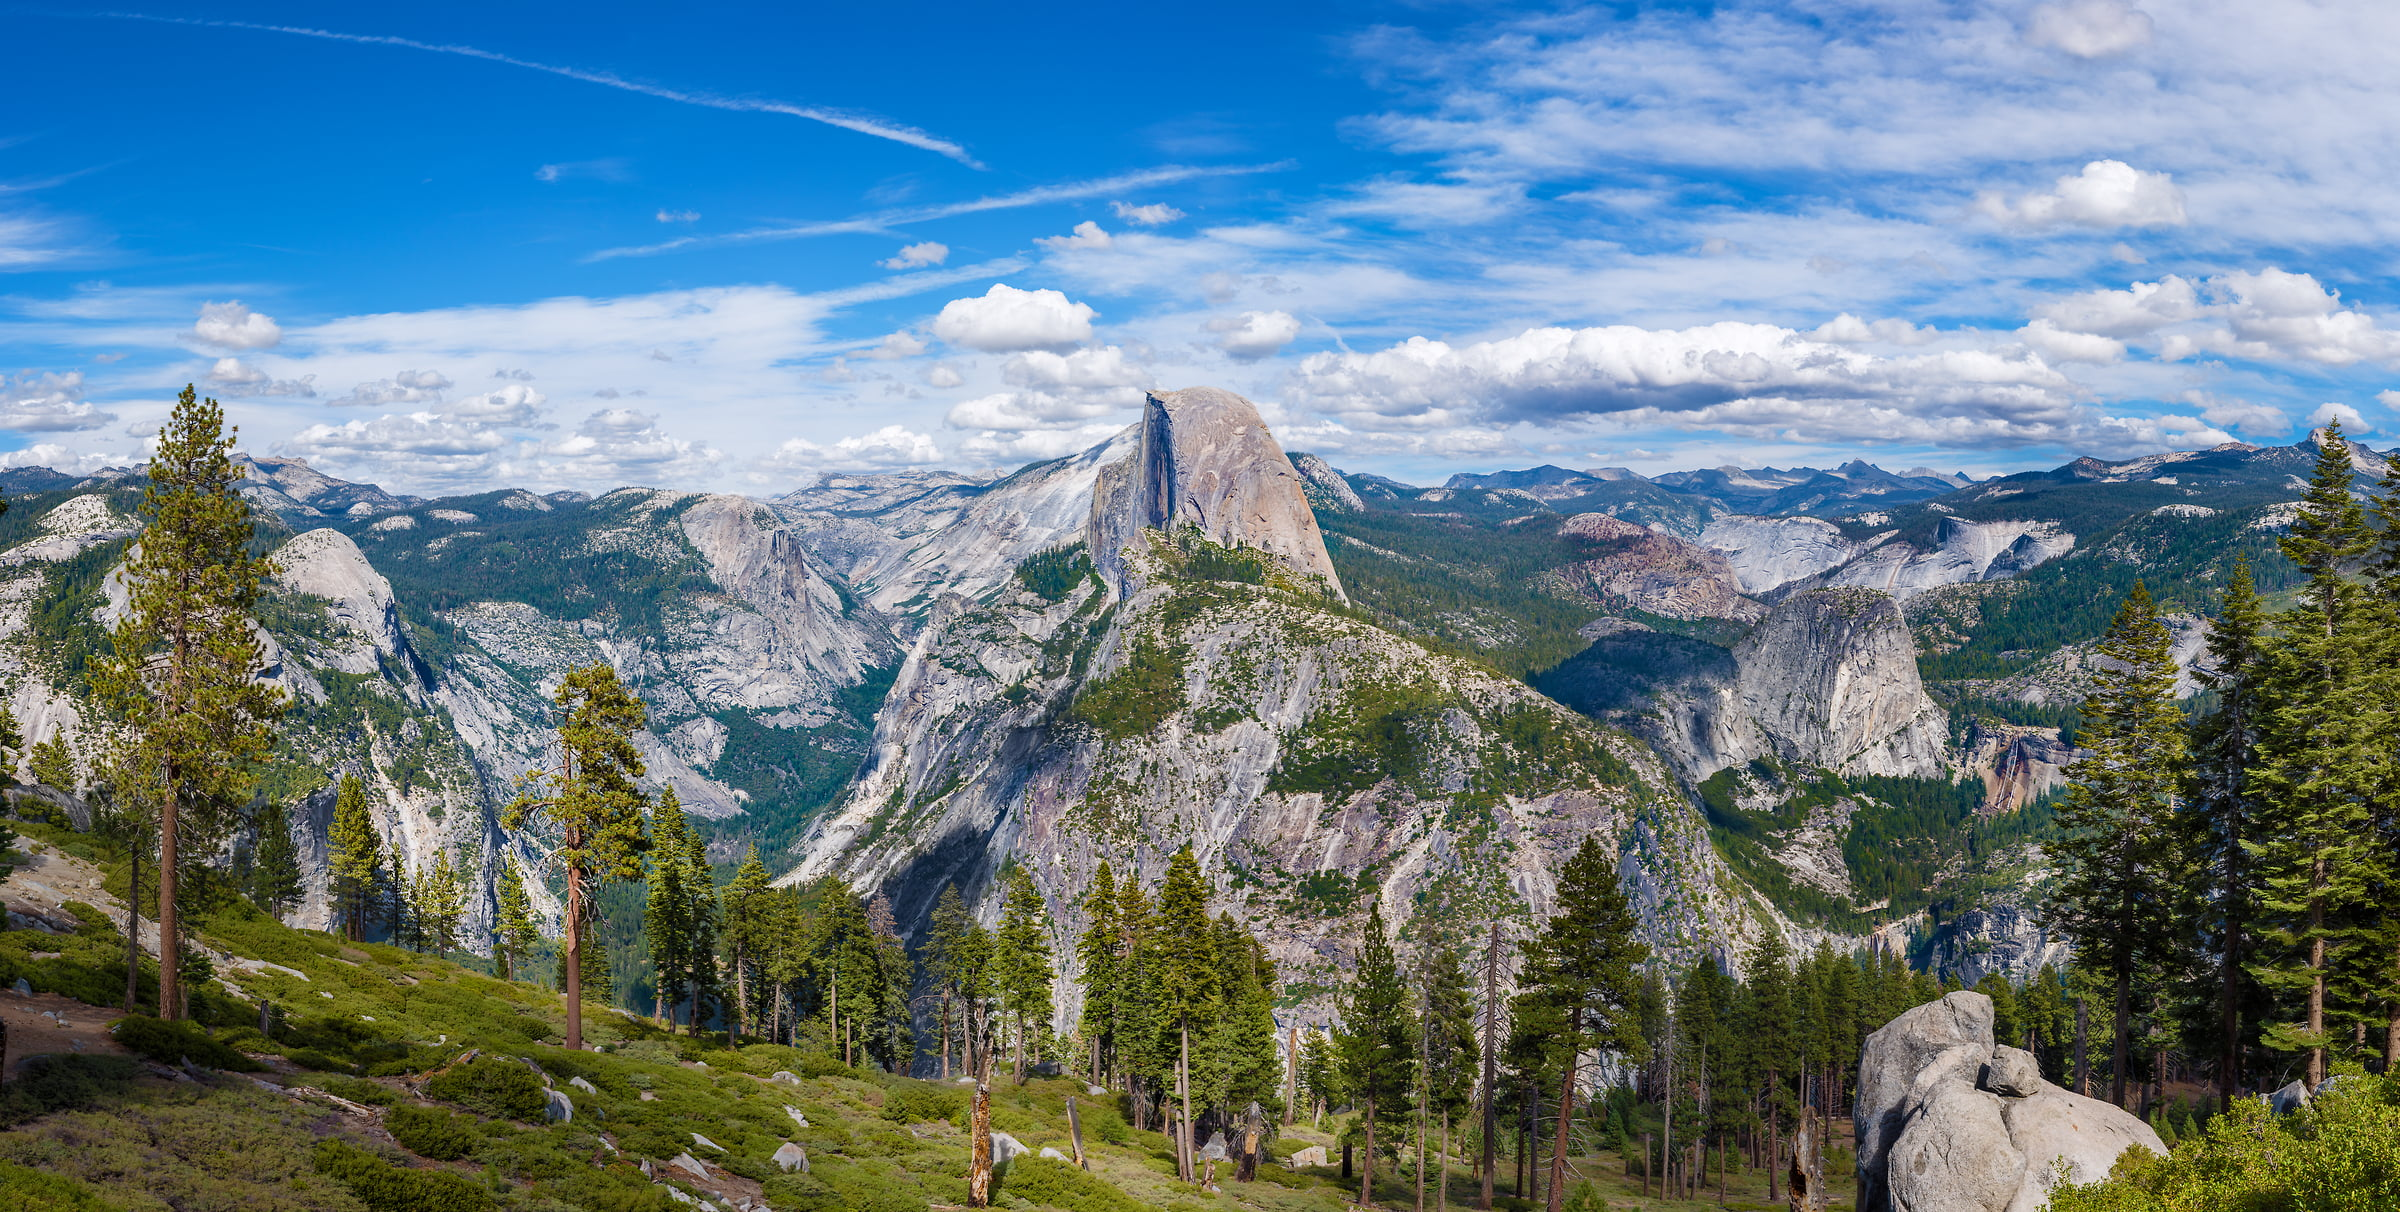 288 megapixels! A very high resolution, large-format VAST photo of an American landscape with an idyllic valley; fine art landscape photograph created by Jim Tarpo in Half Dome, Yosemite National Park, California